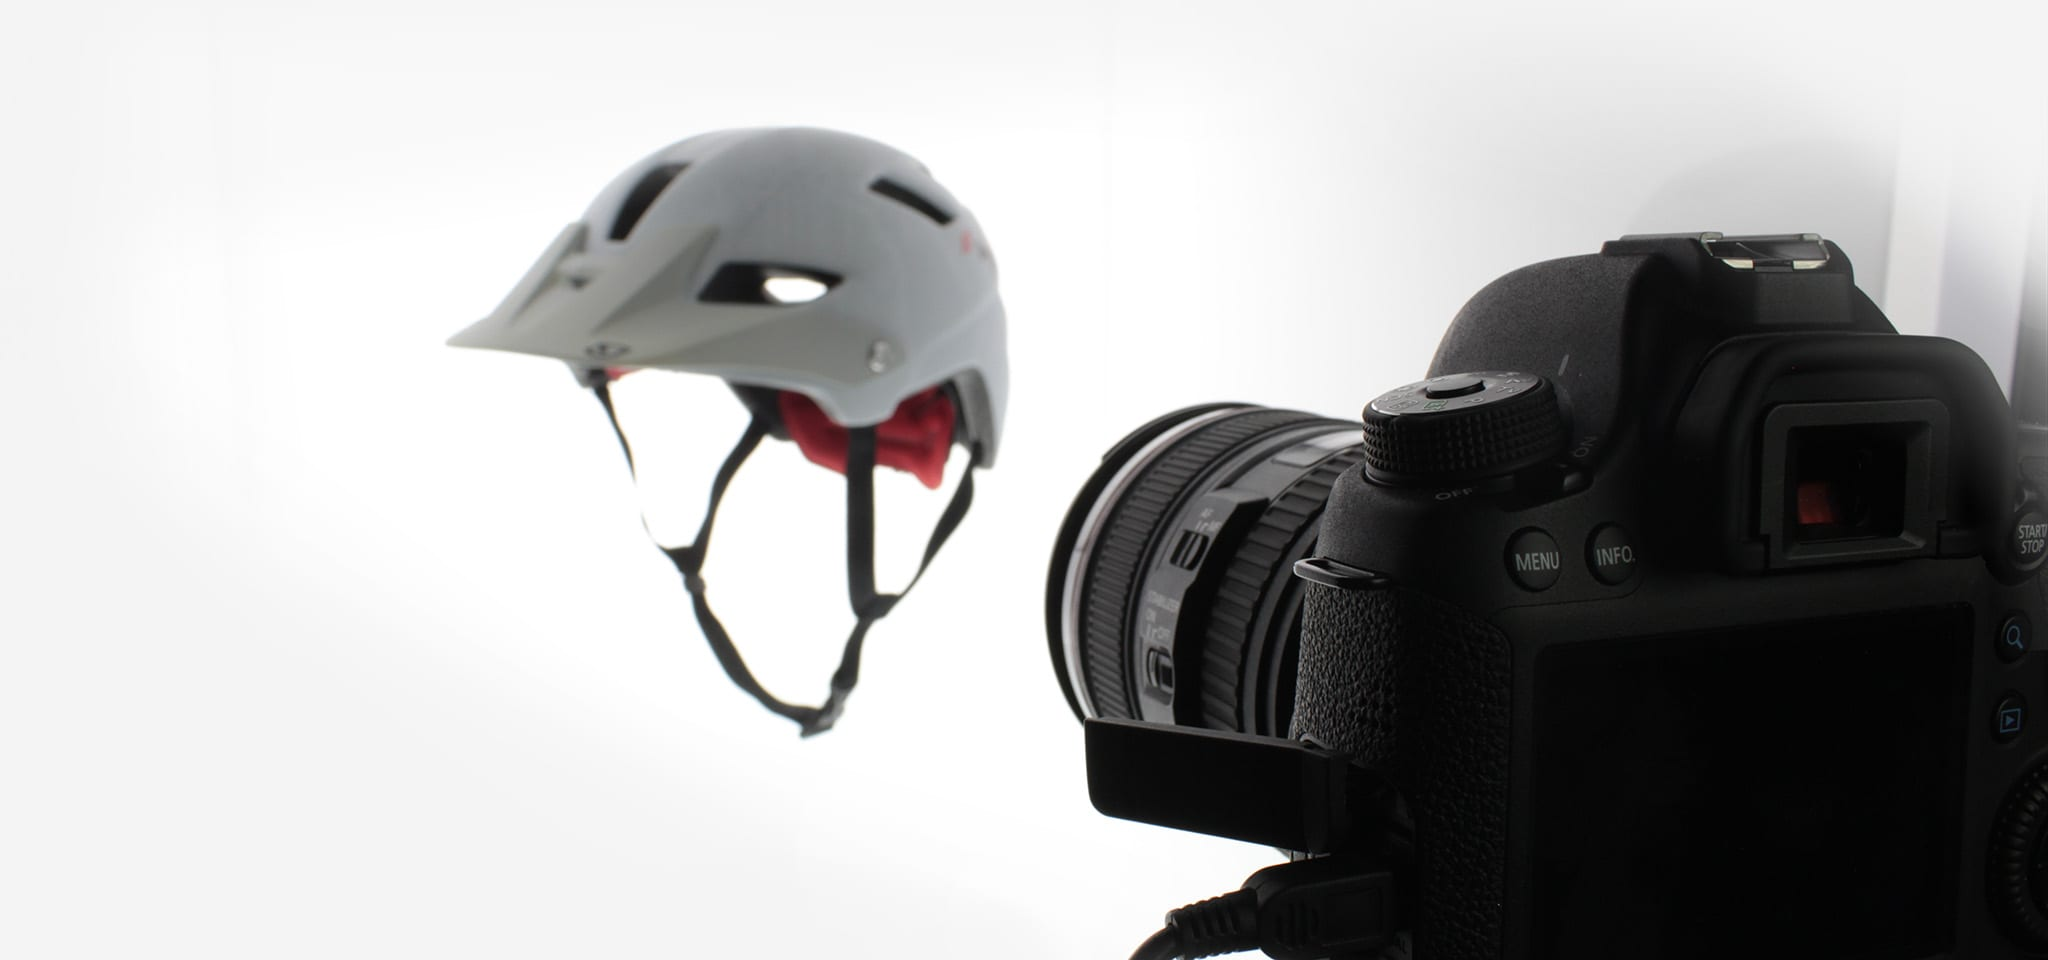 Computer Controlled Product Photography Solutions